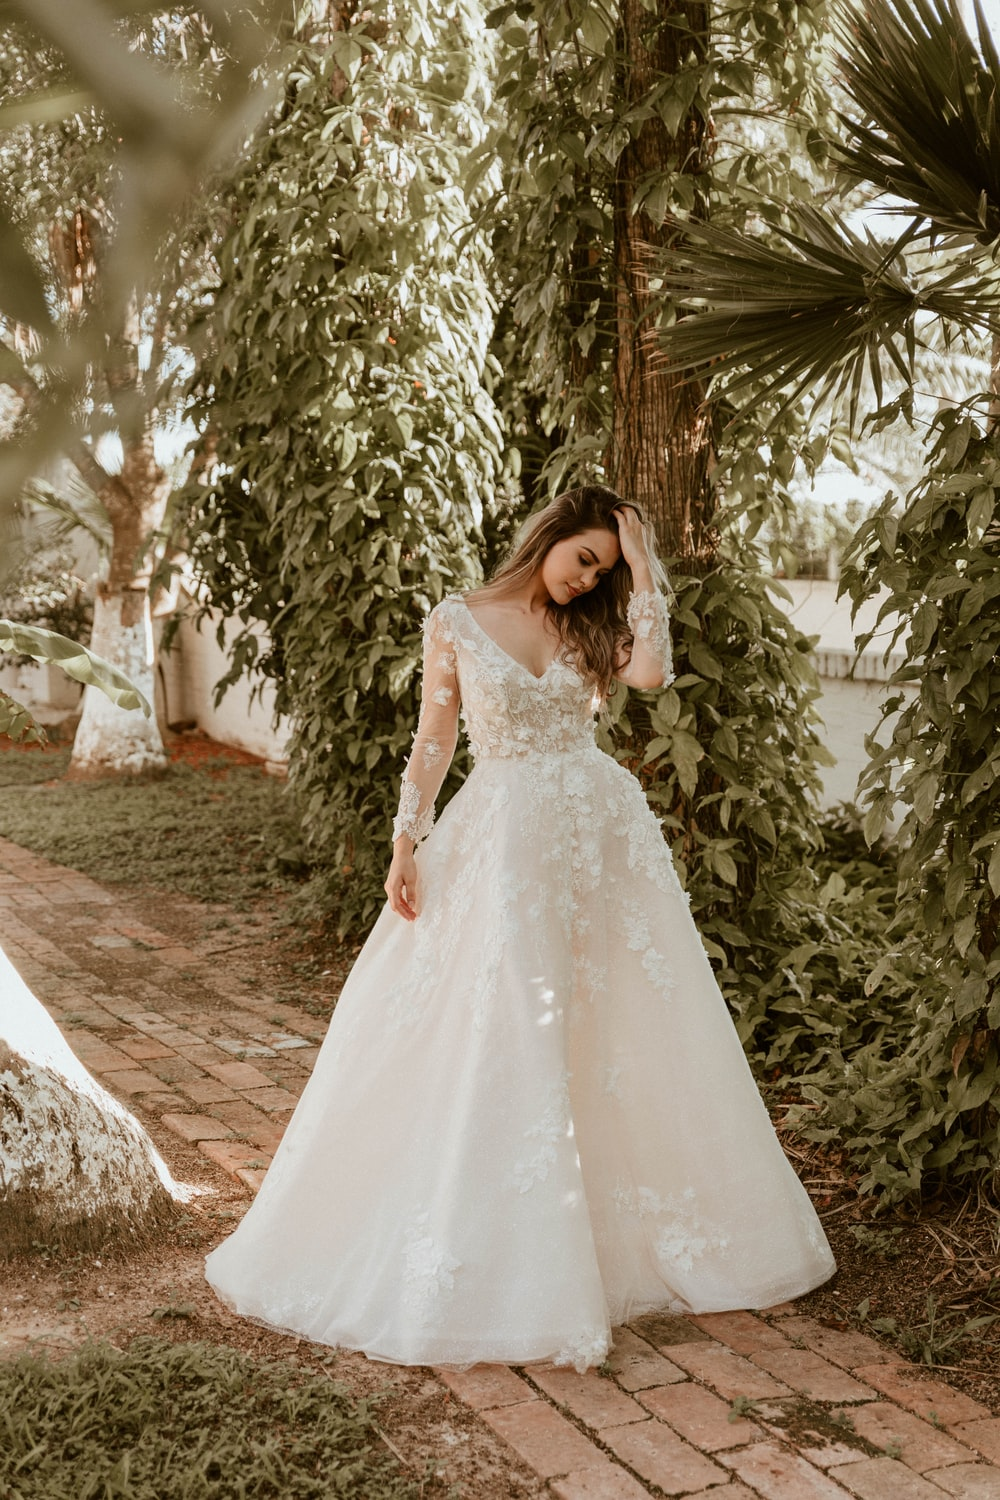 woman in white wedding dress standing near green trees during daytime